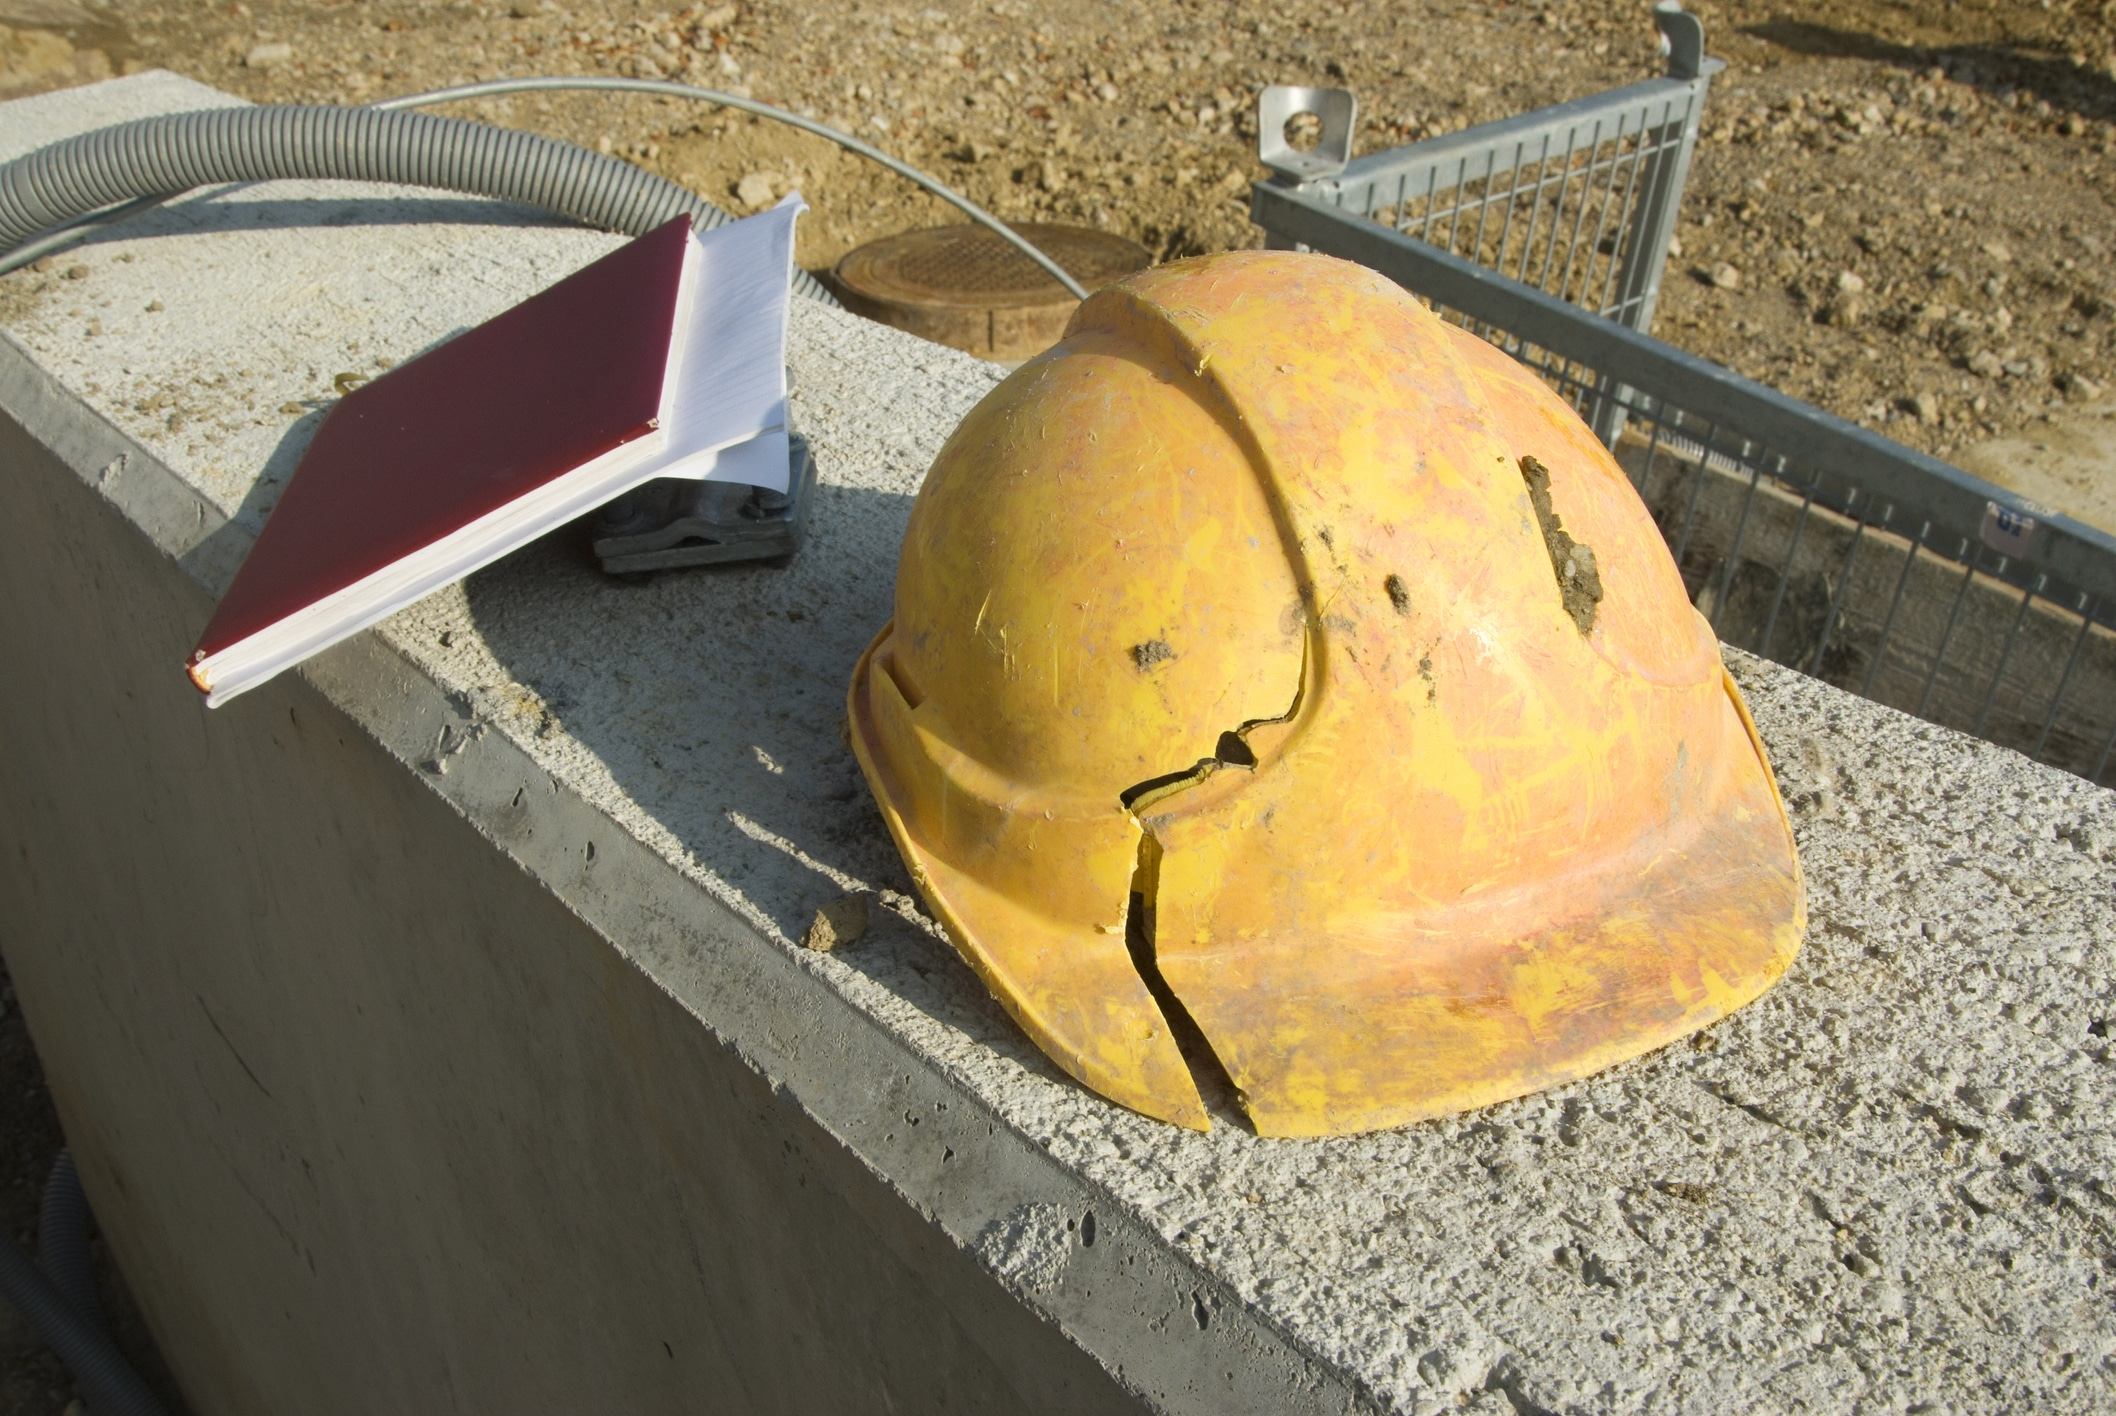 Broken construction hard hat